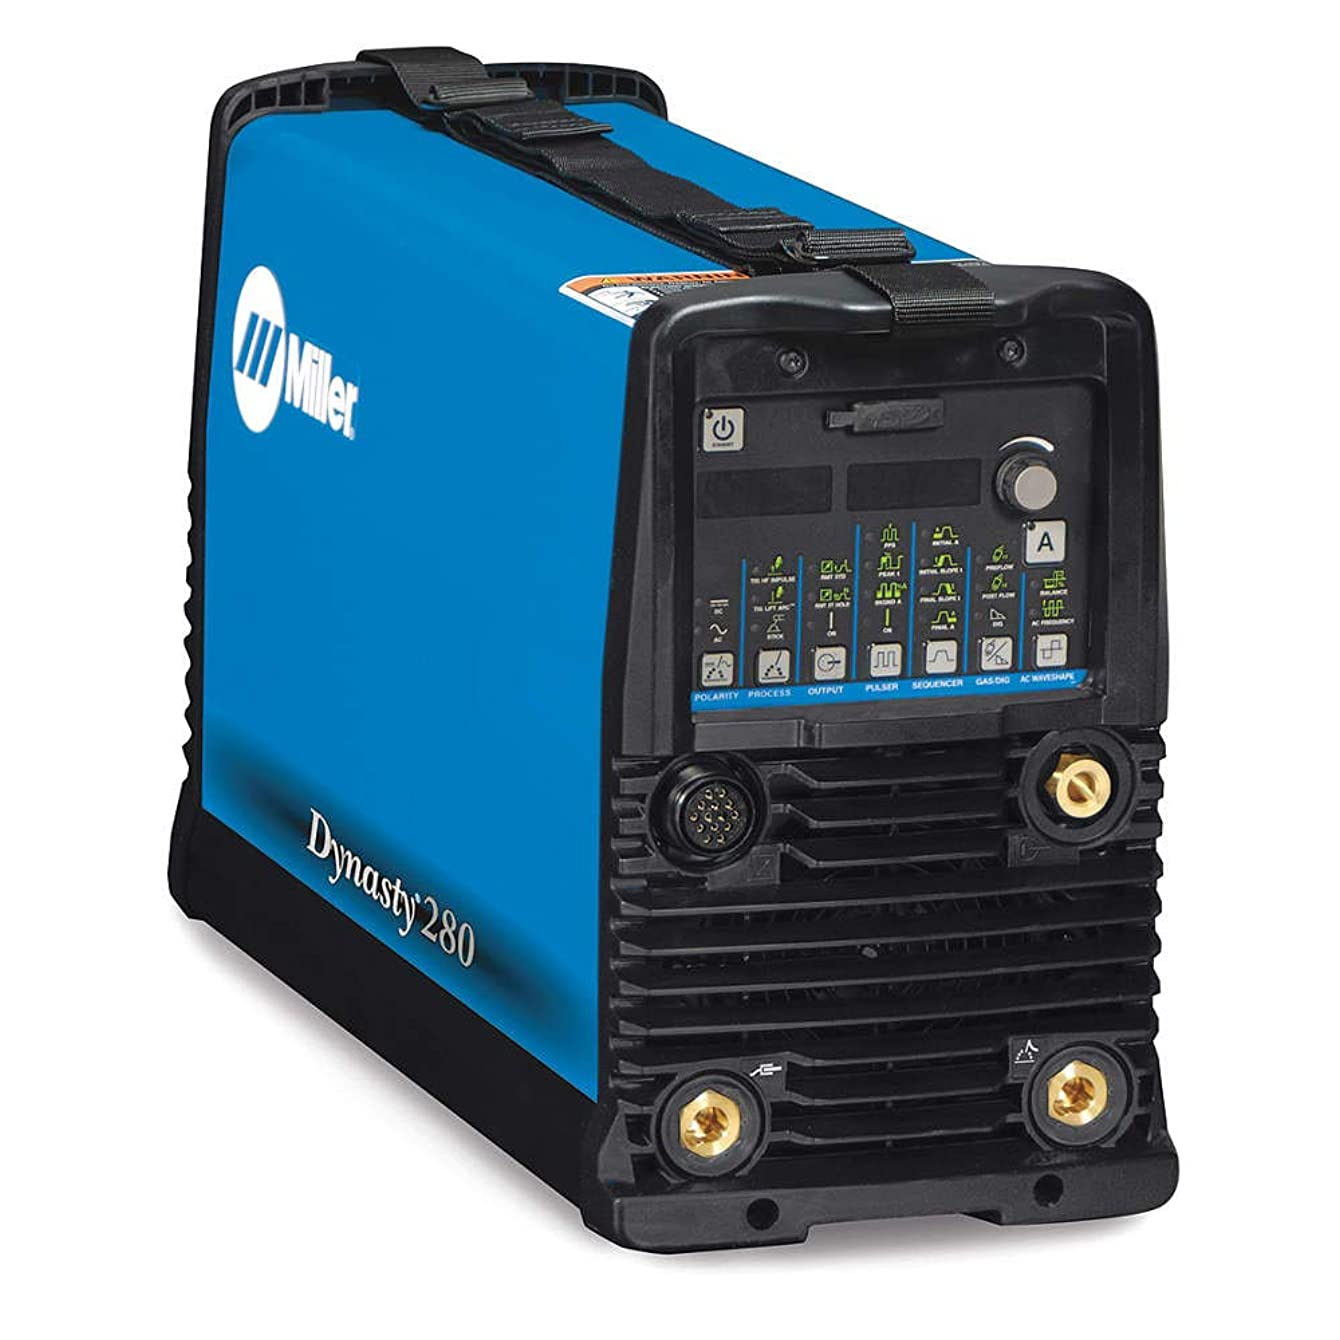 Miller Electric - 907514 - Miller Dynasty 280 DX Auto-Line TIG Welder, 208/230/400/460/575 Volt with Dynasty 280 DX Power Source with CPS, 8' Primary Power Cord, (2) Dinse 50 mm Connectors and